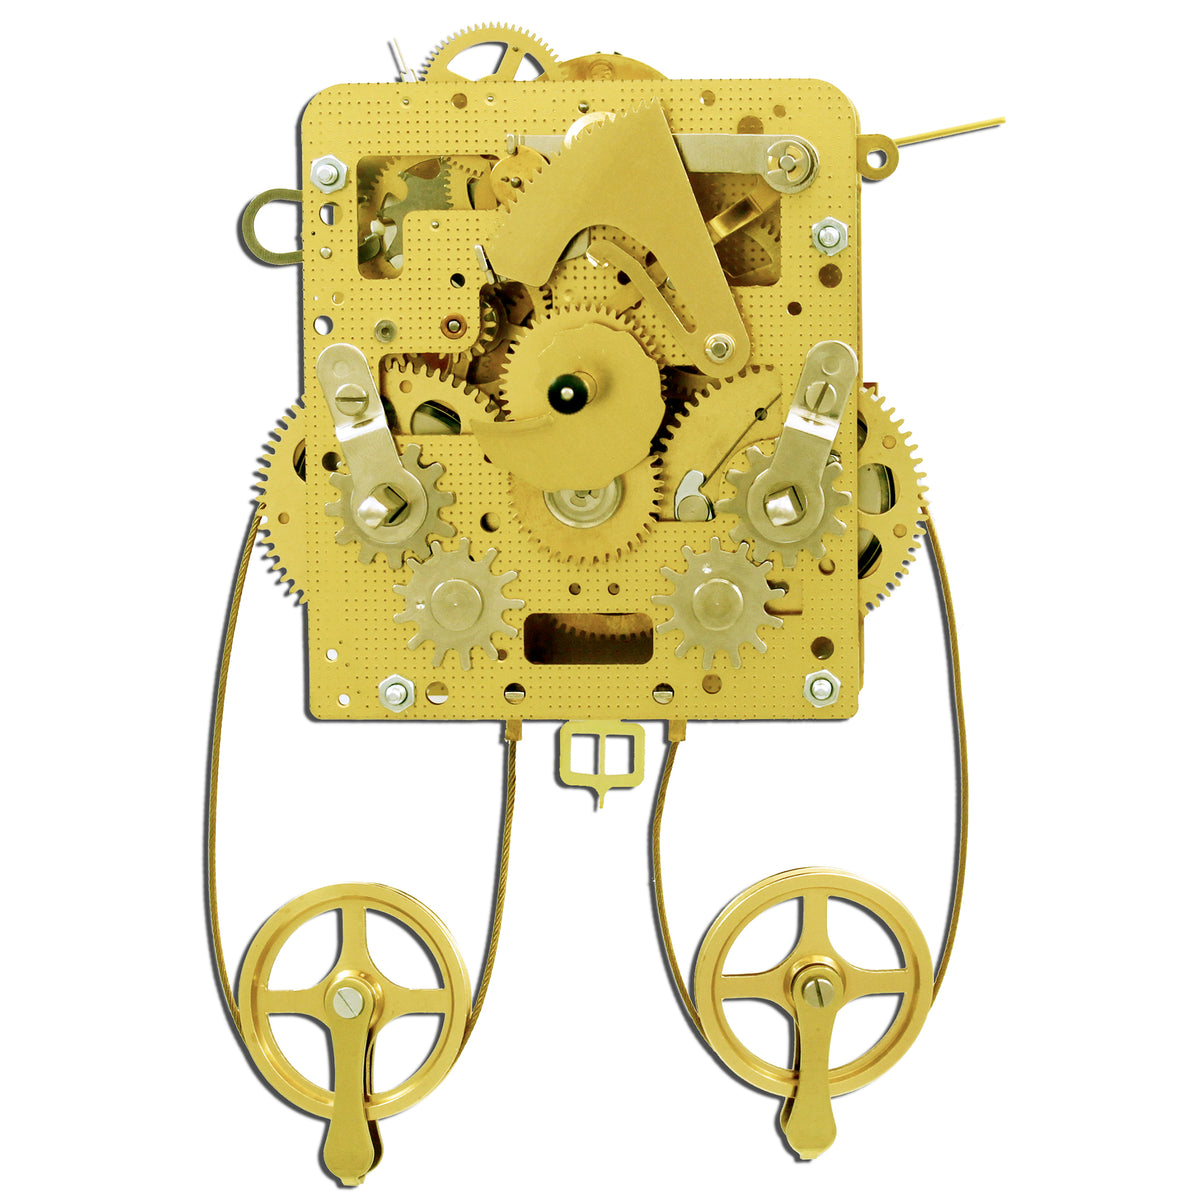 Hermle Clock Movement 241-840